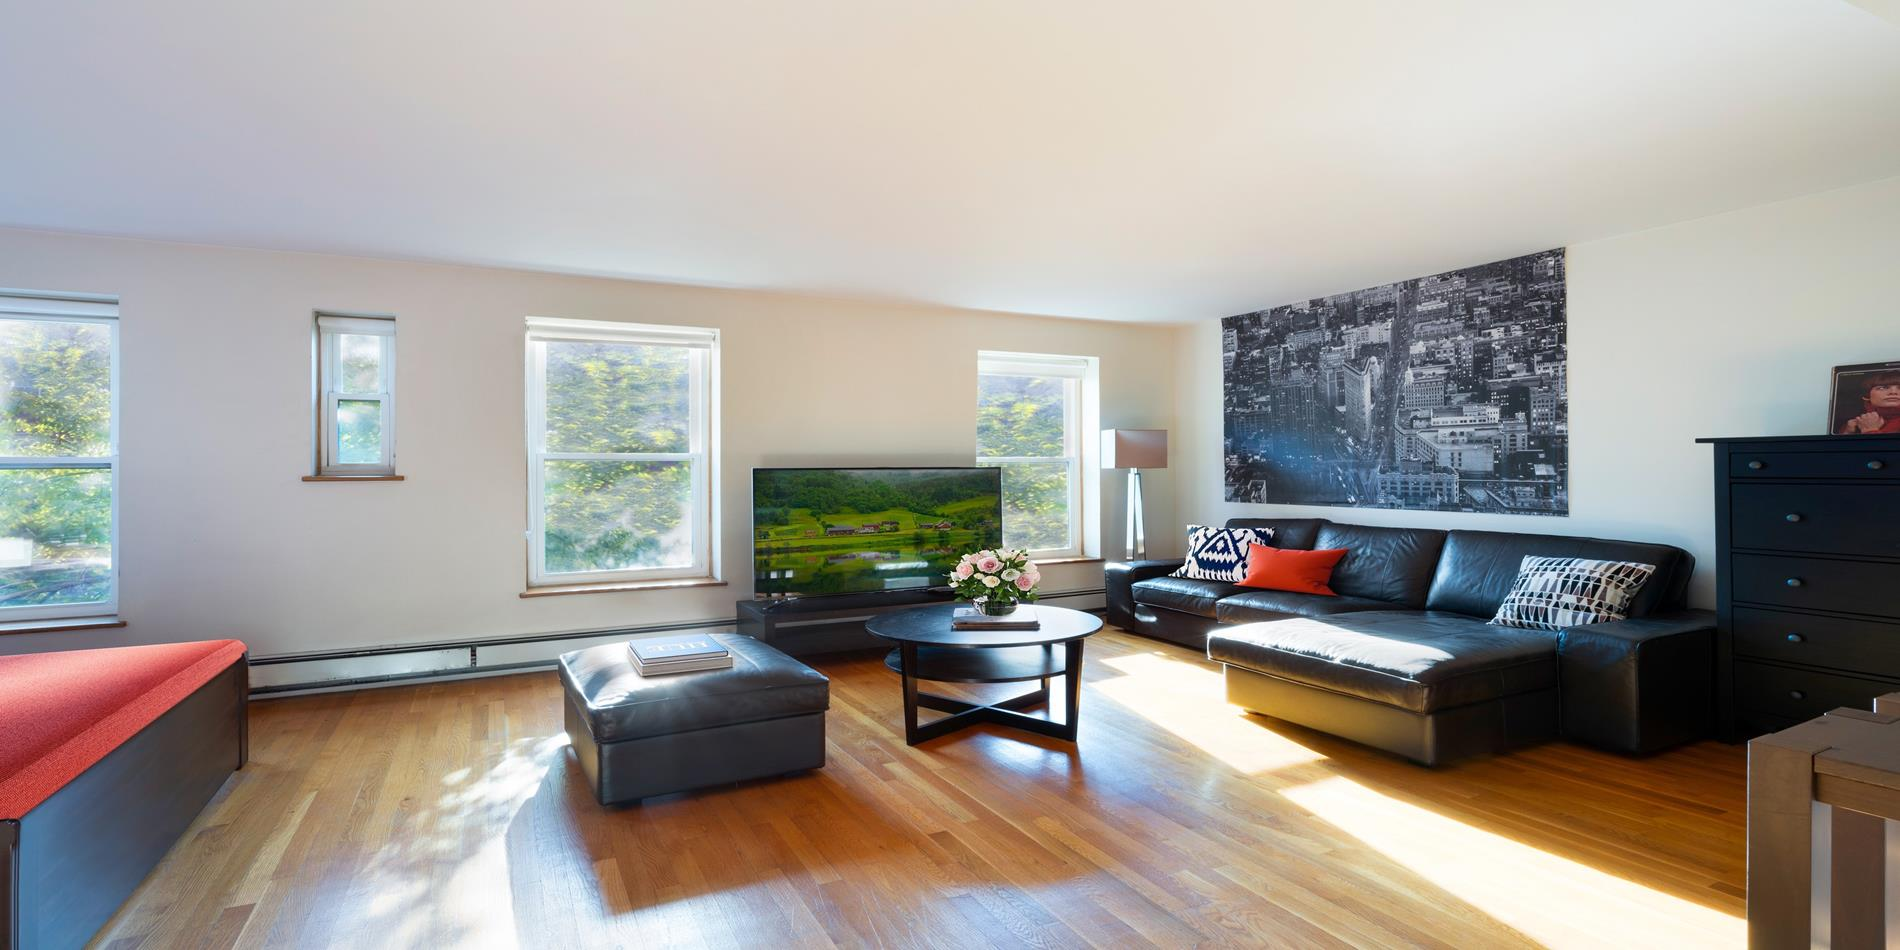 Apartment for sale at 509 East 6th Street, Apt 4-F